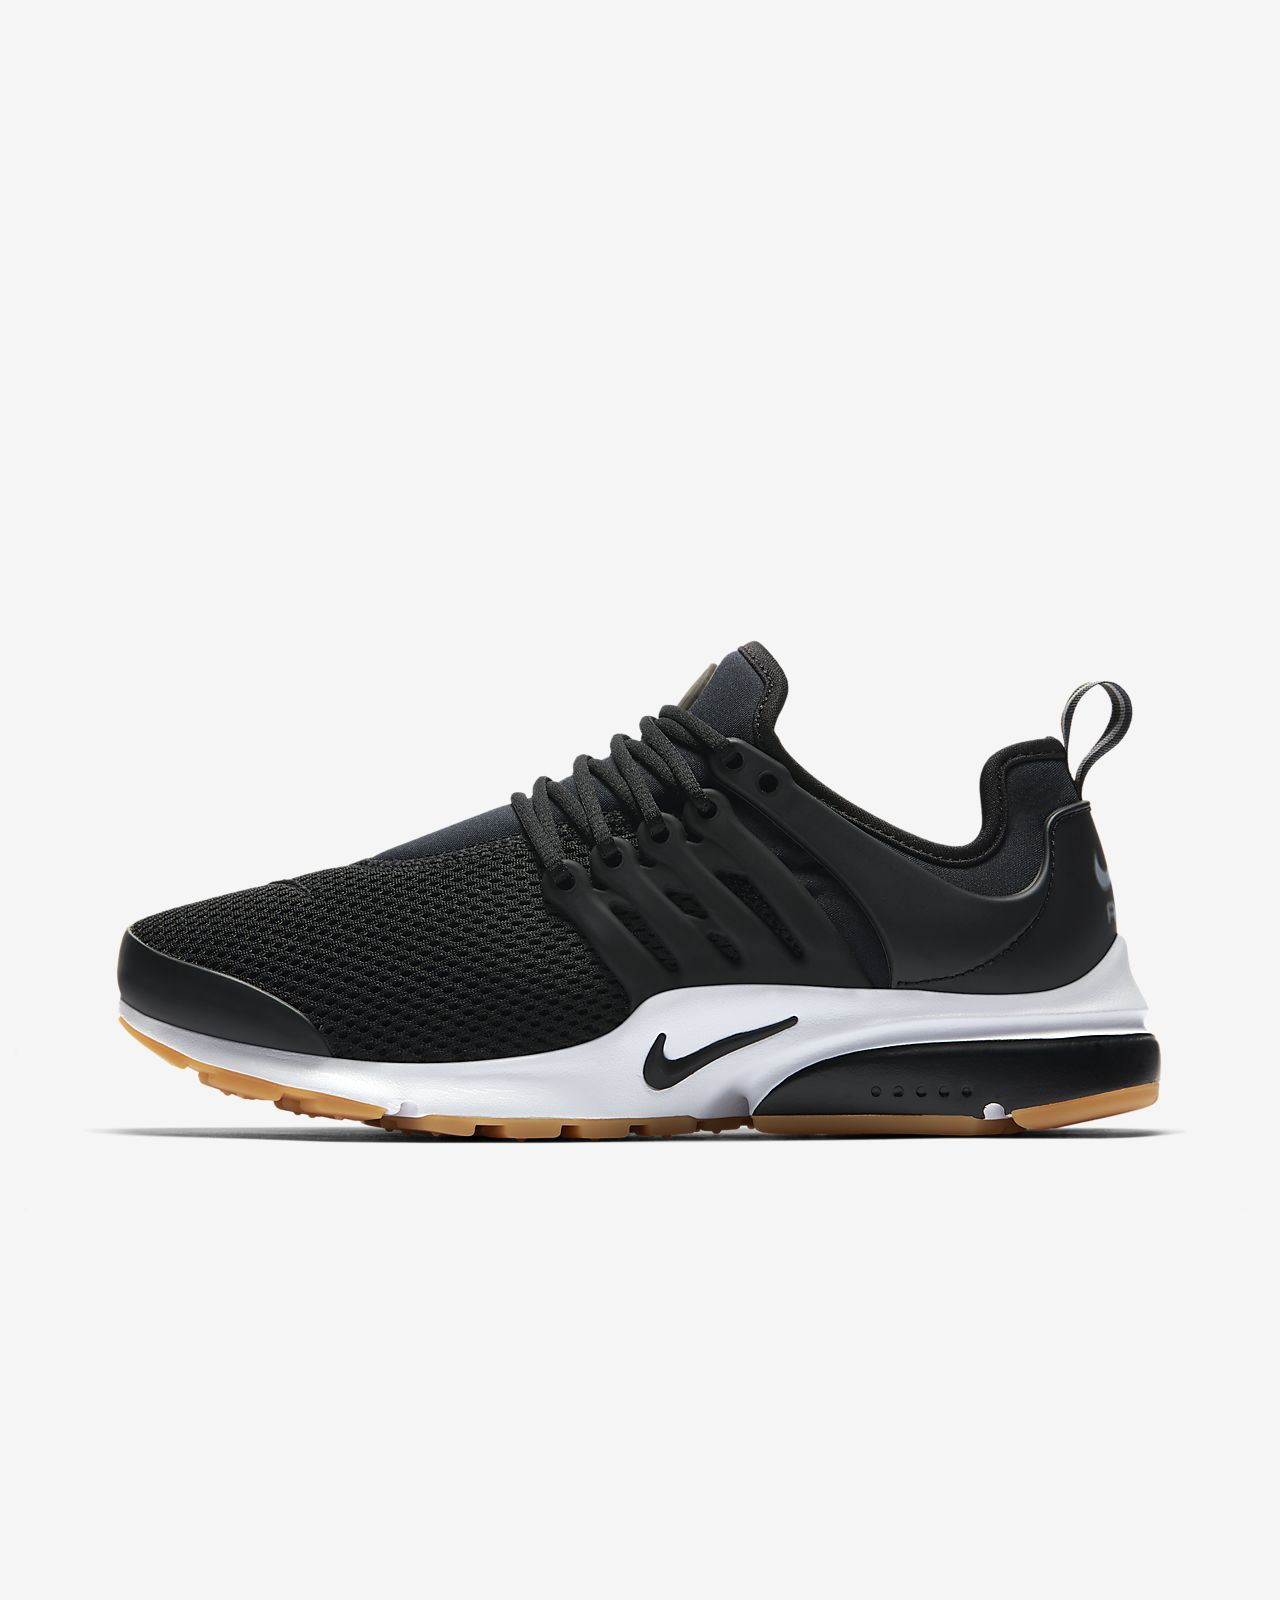 premium selection fb780 de626 Nike Air Presto Women's Shoe